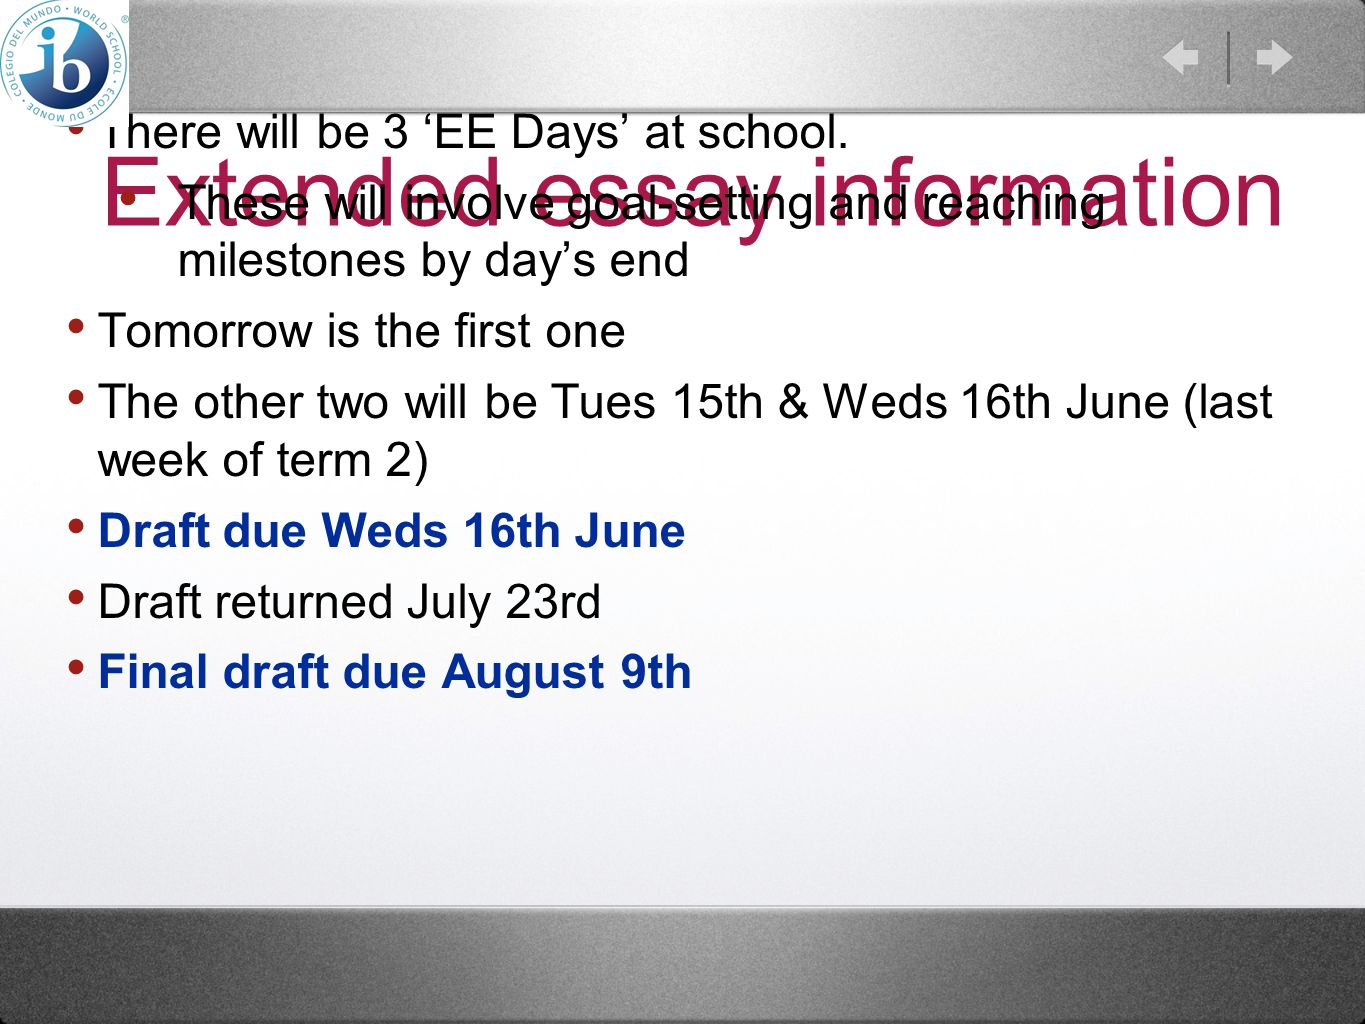 Extended essay information